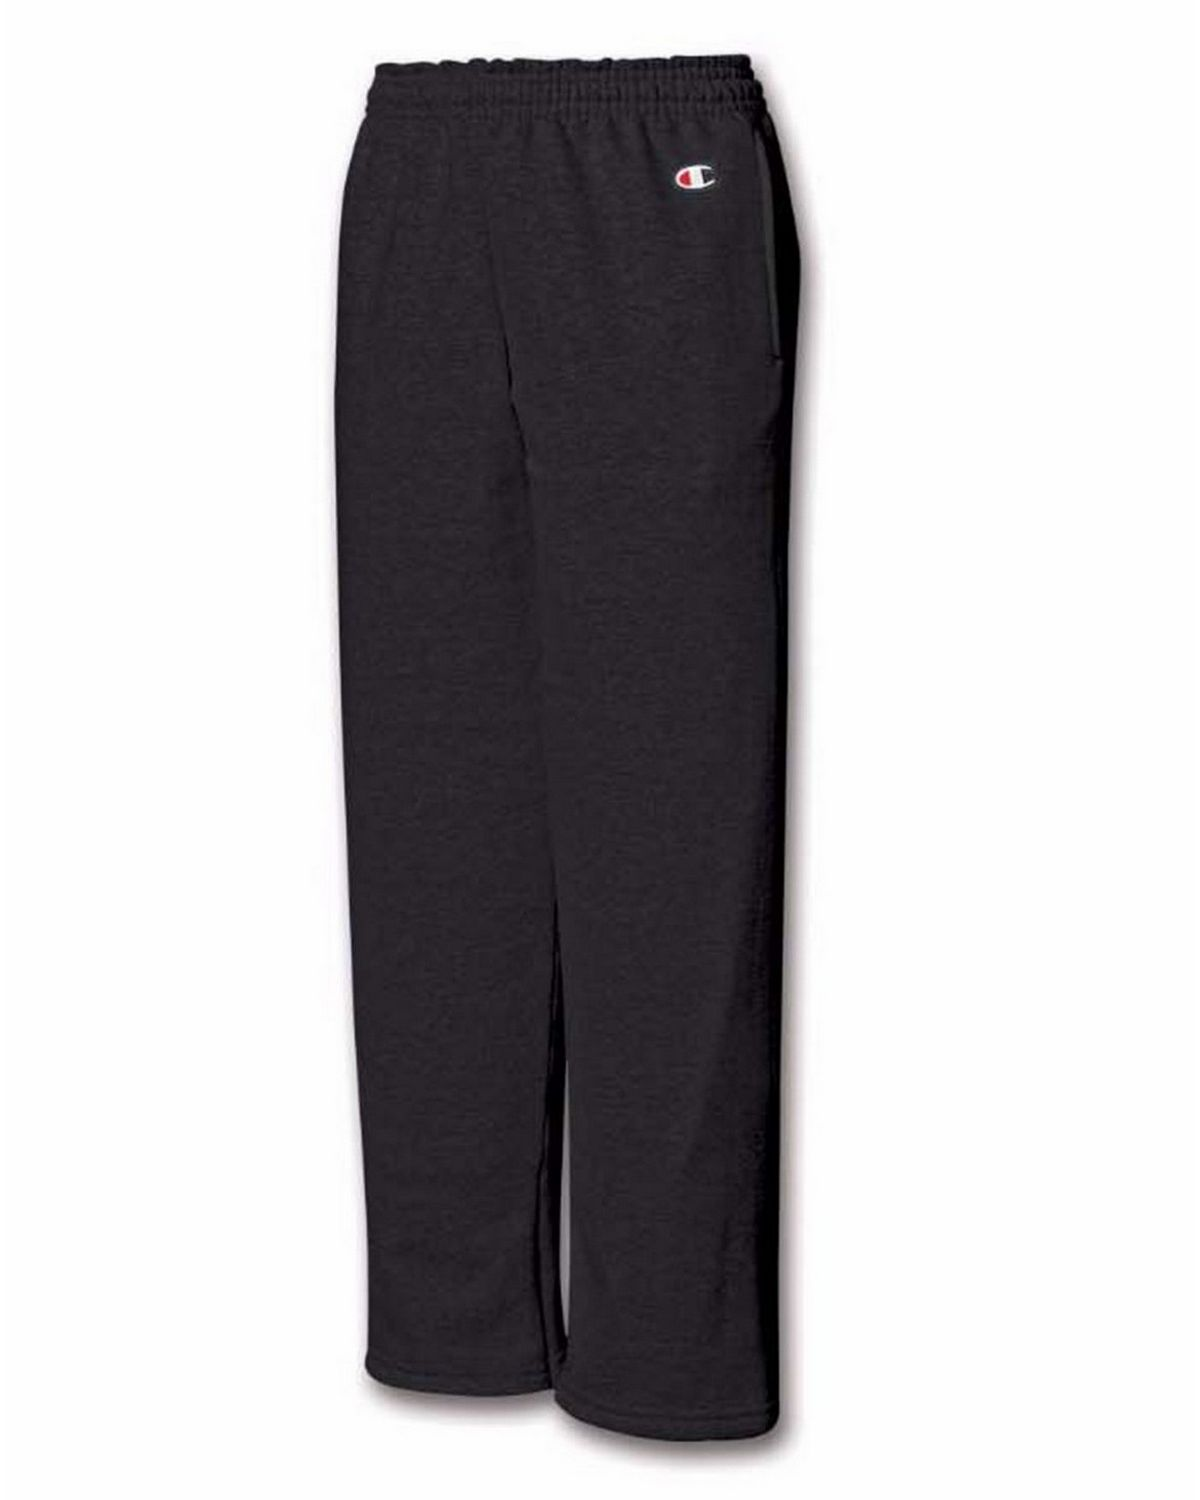 Champion Eco Open-Bottom Pants Solid Sweat Pants Youth P890 PartNumber: 0000000000000002088900000000000010645740P